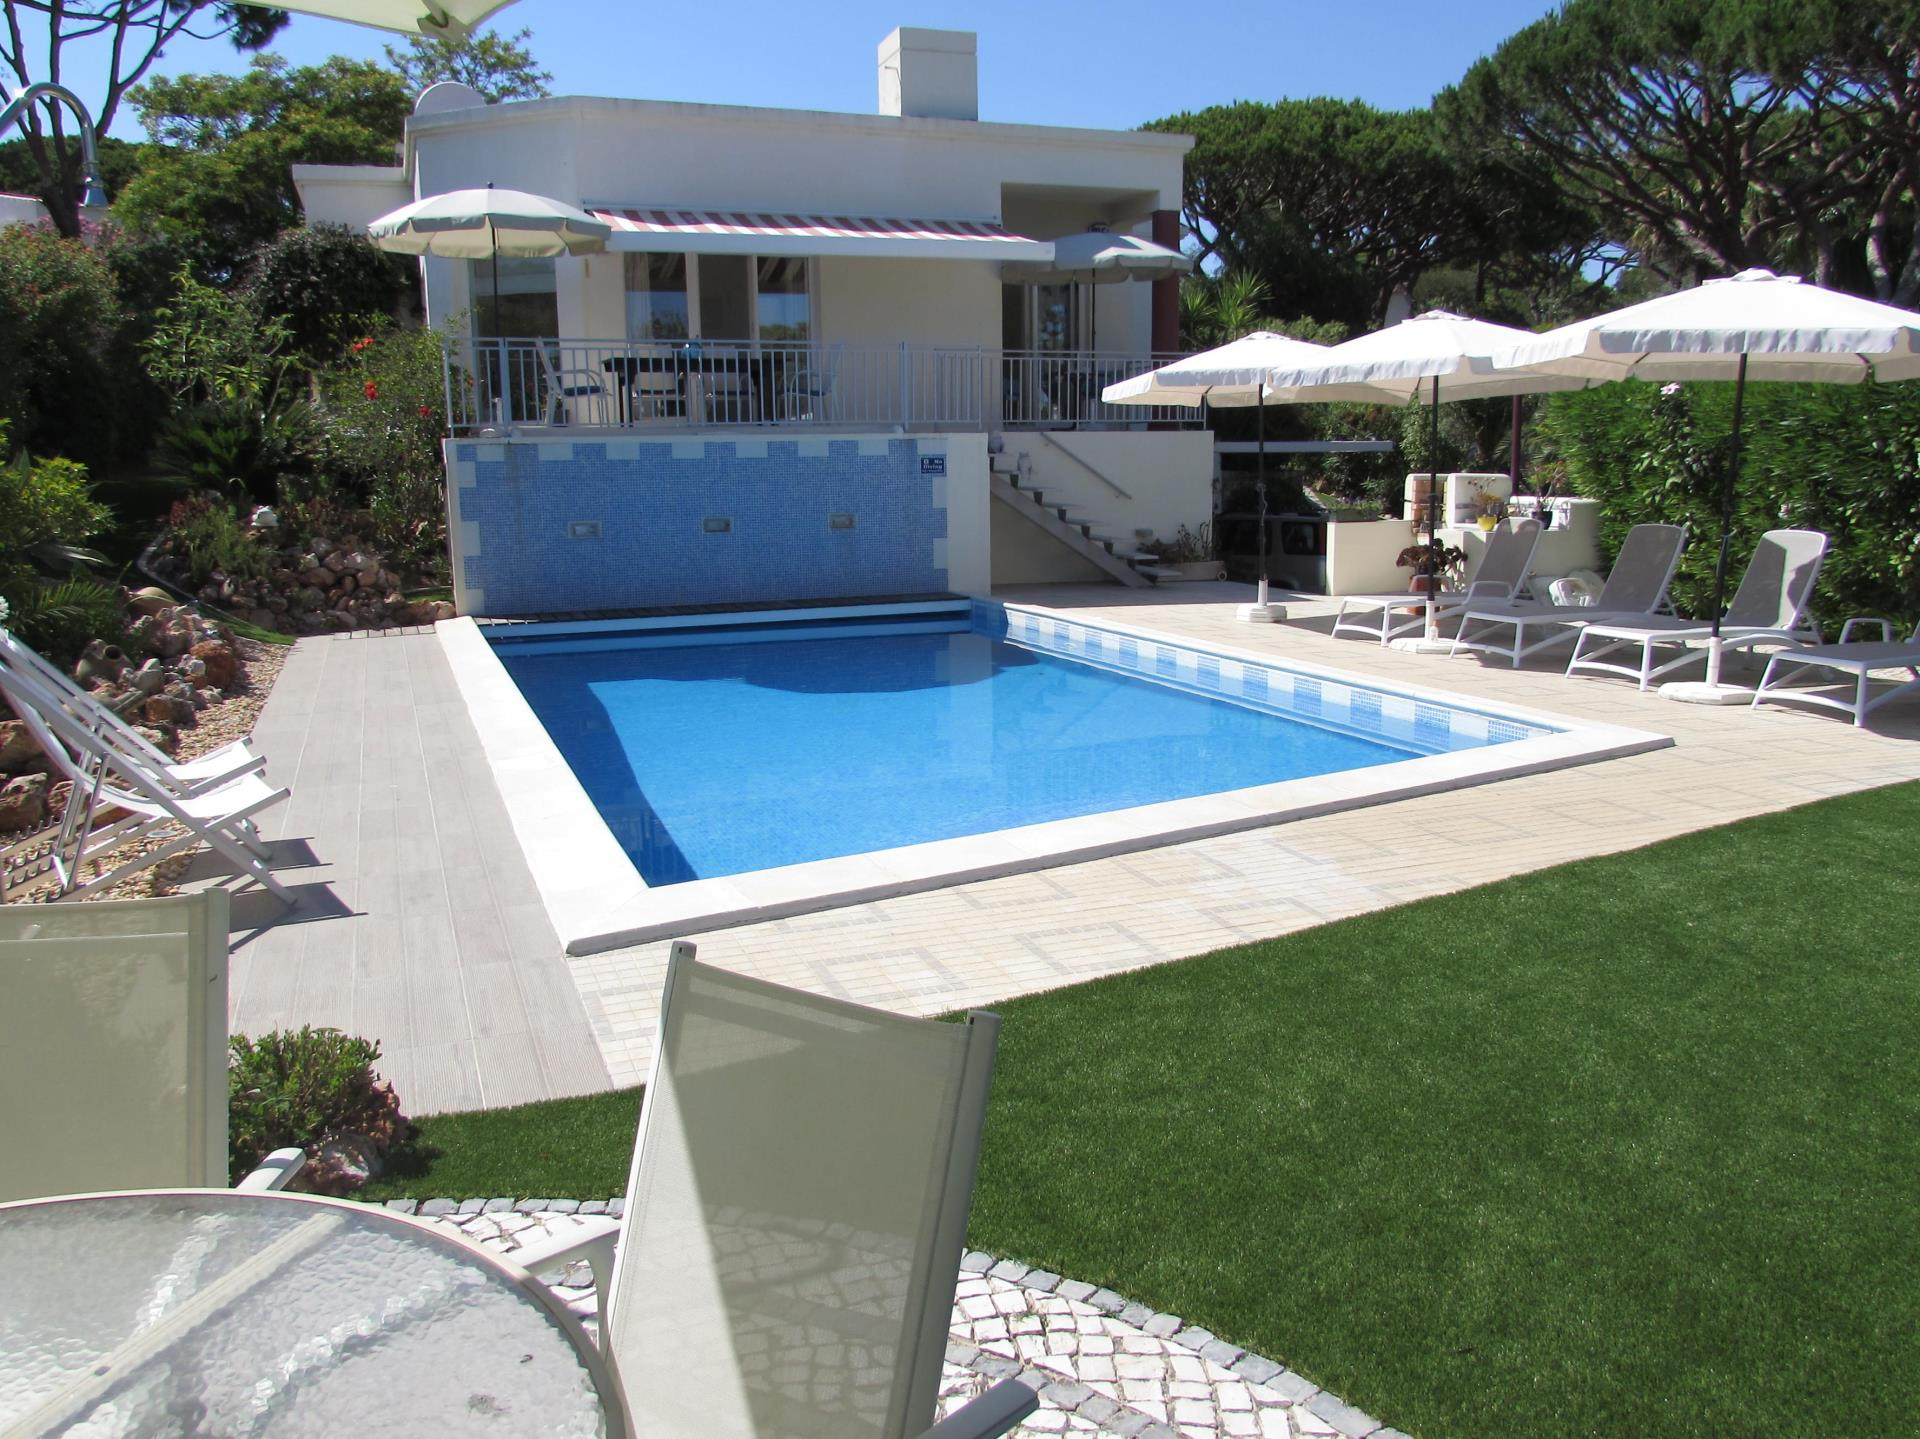 Casa Unifamiliar por un Venta en Detached house, 3 bedrooms, for Sale Loule, Algarve Portugal